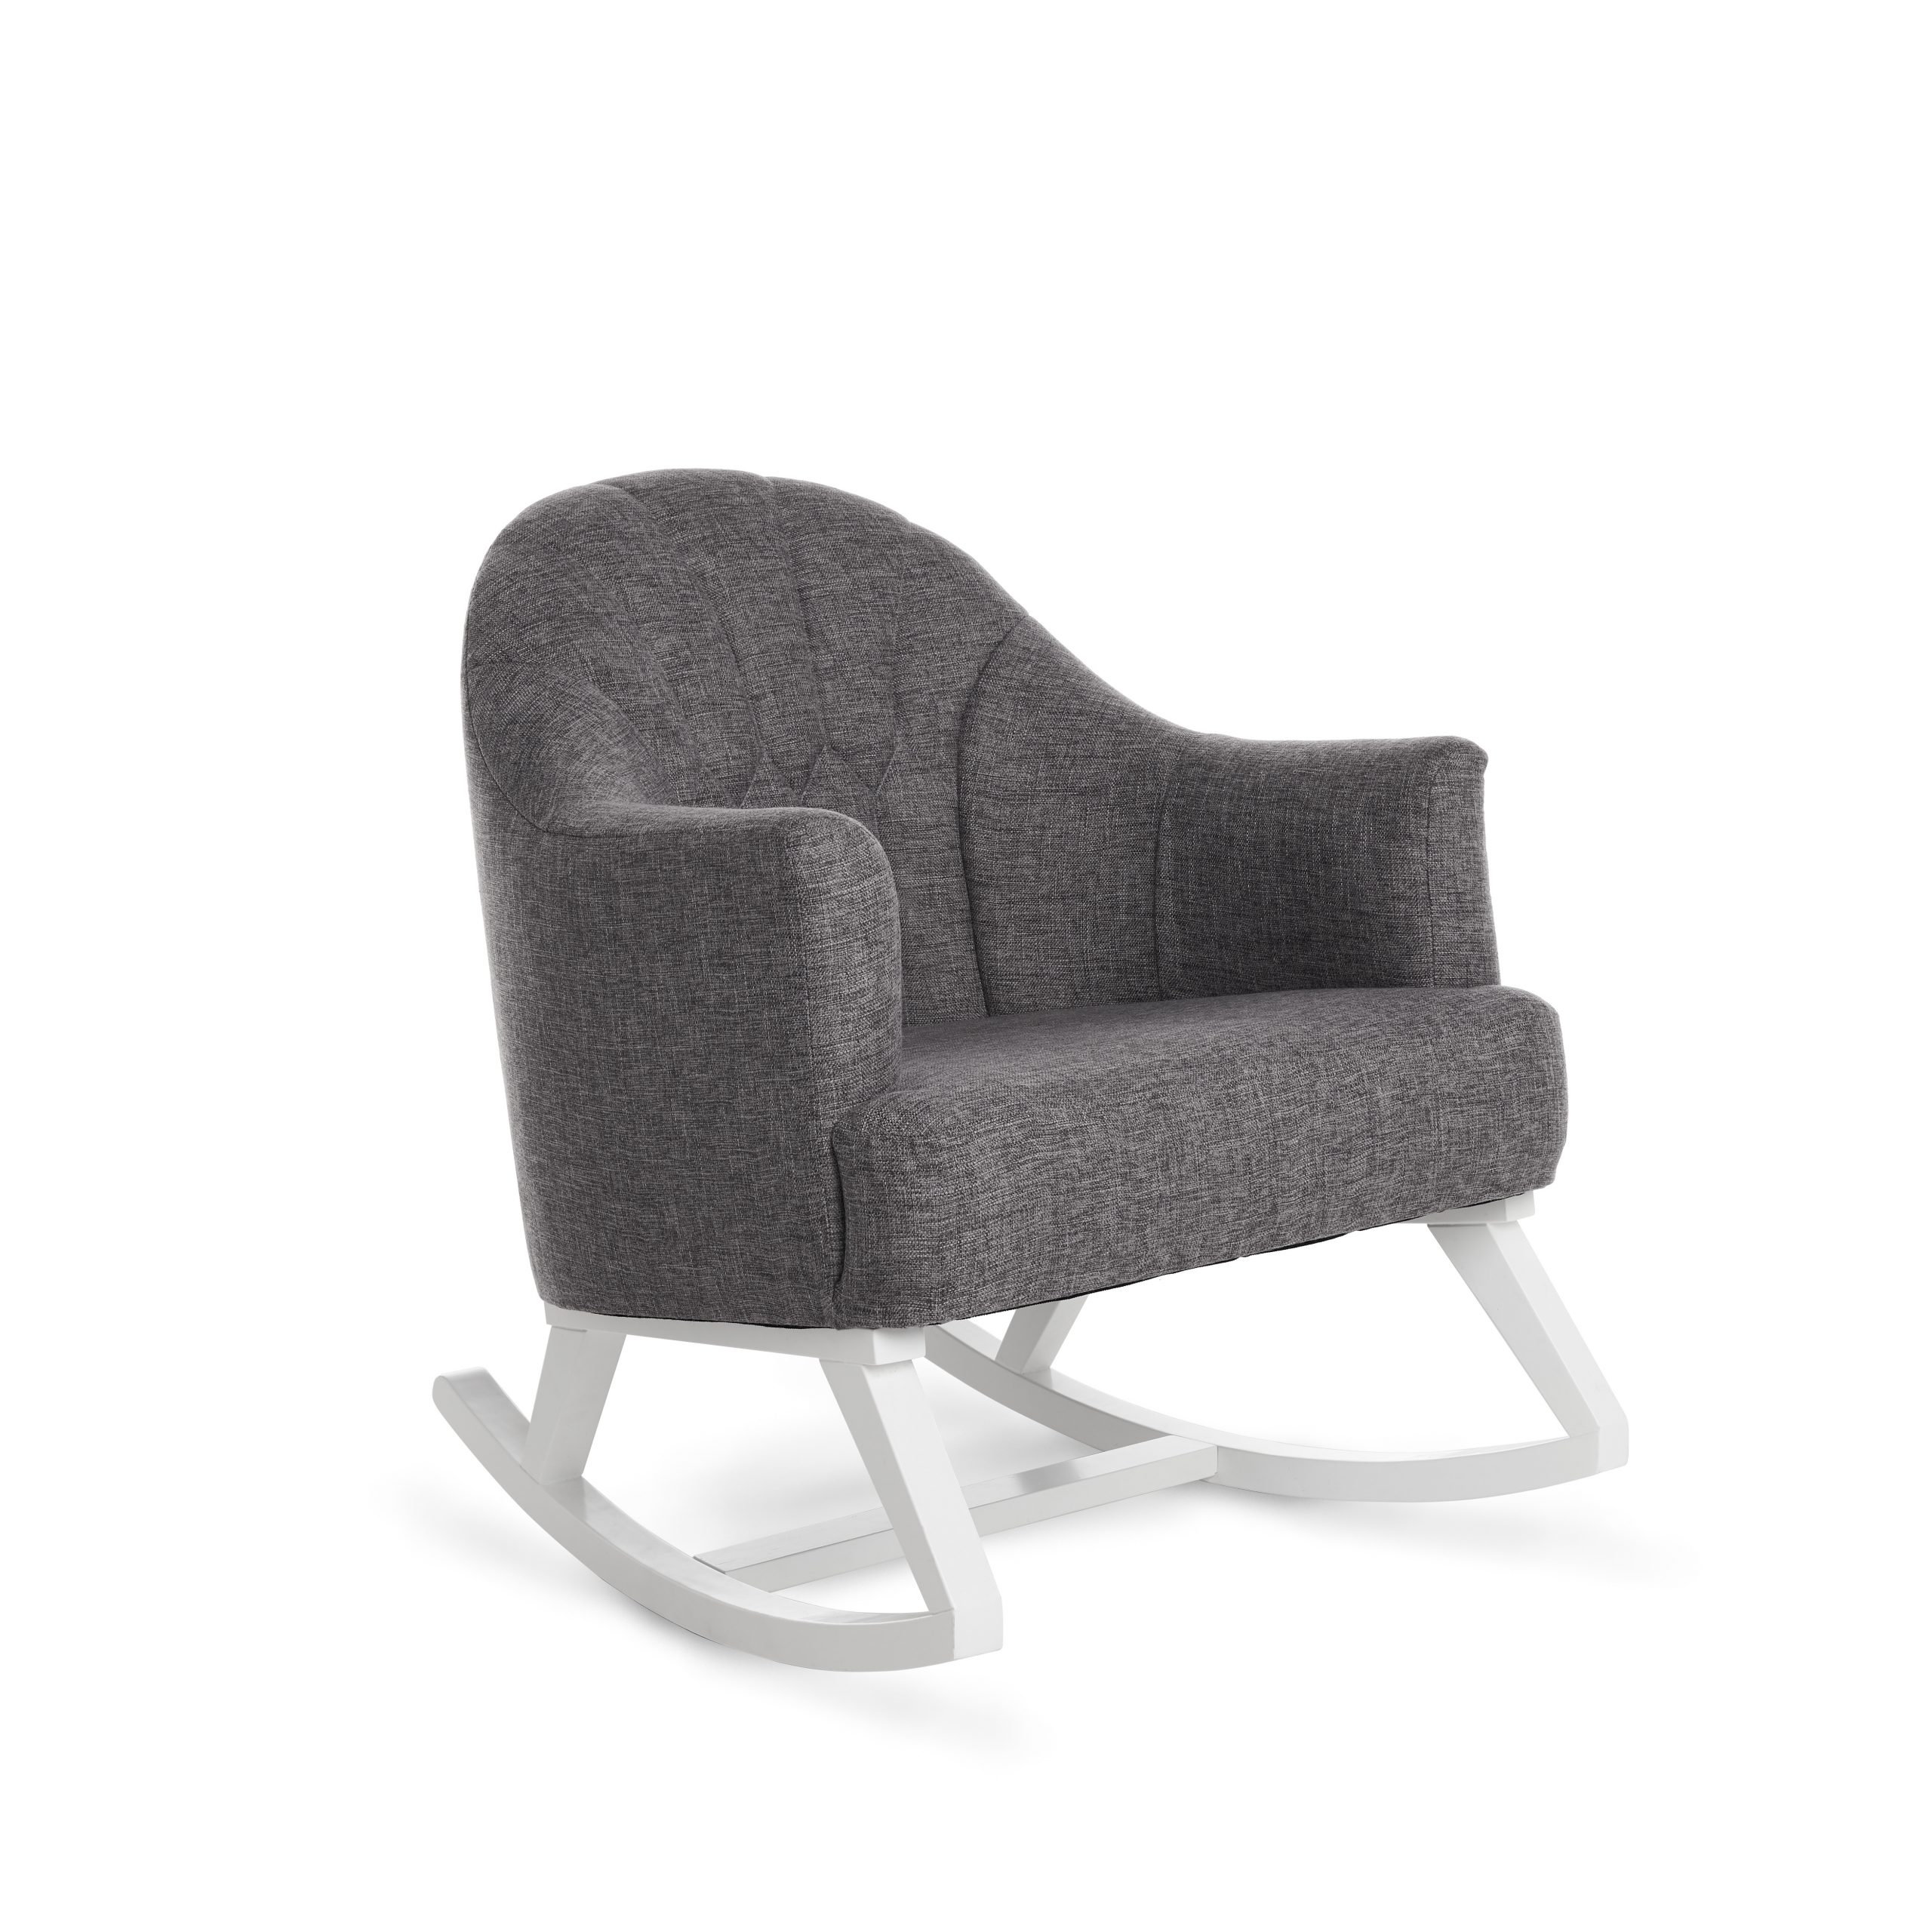 Round Back Rocking Chair White with Grey Padded Seat